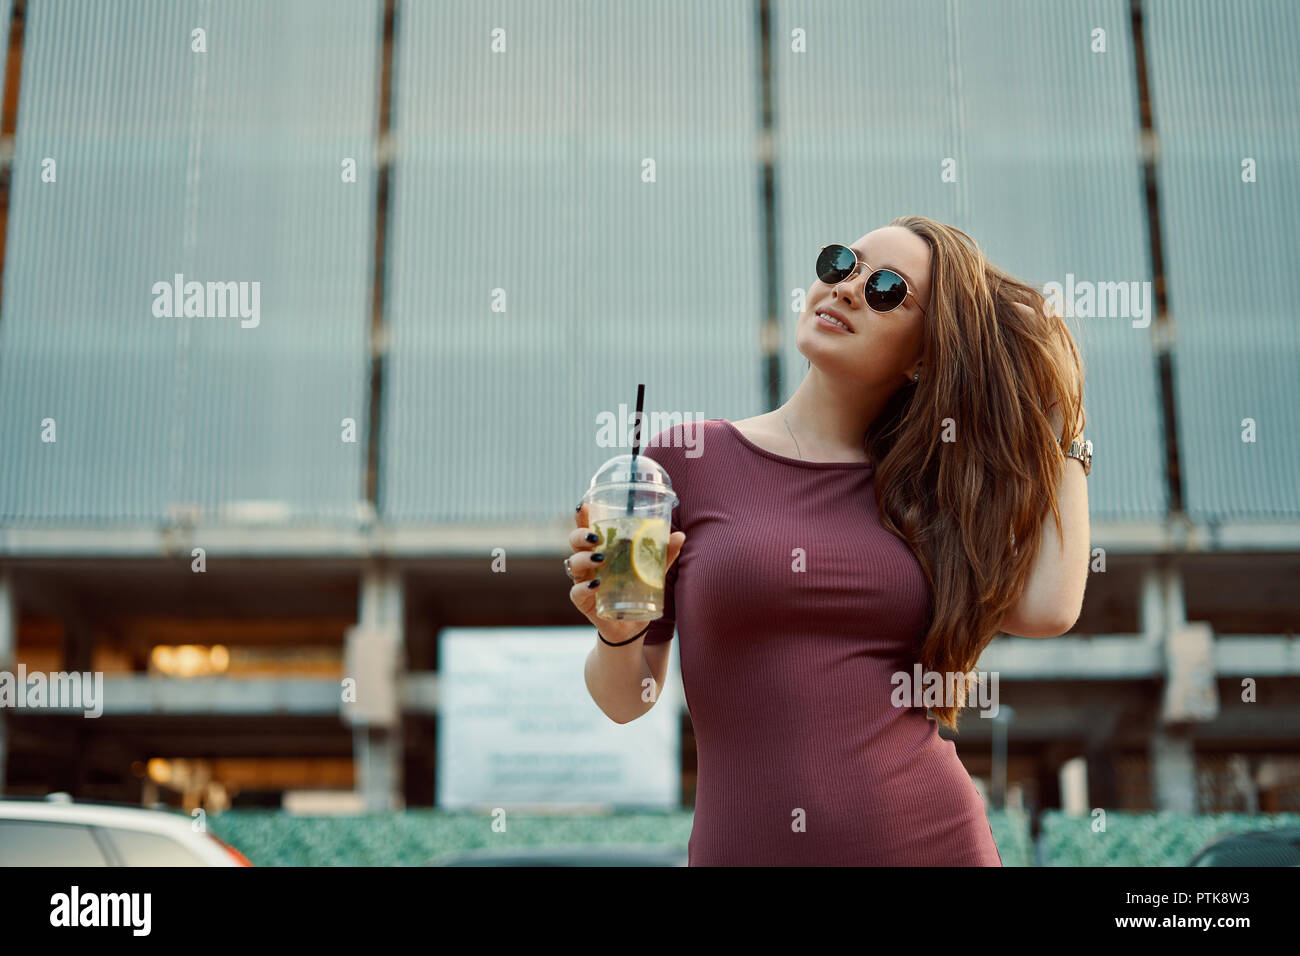 Pensive careless smiling woman in the street drinking refreshing lemonade. City morning concept. - Stock Image